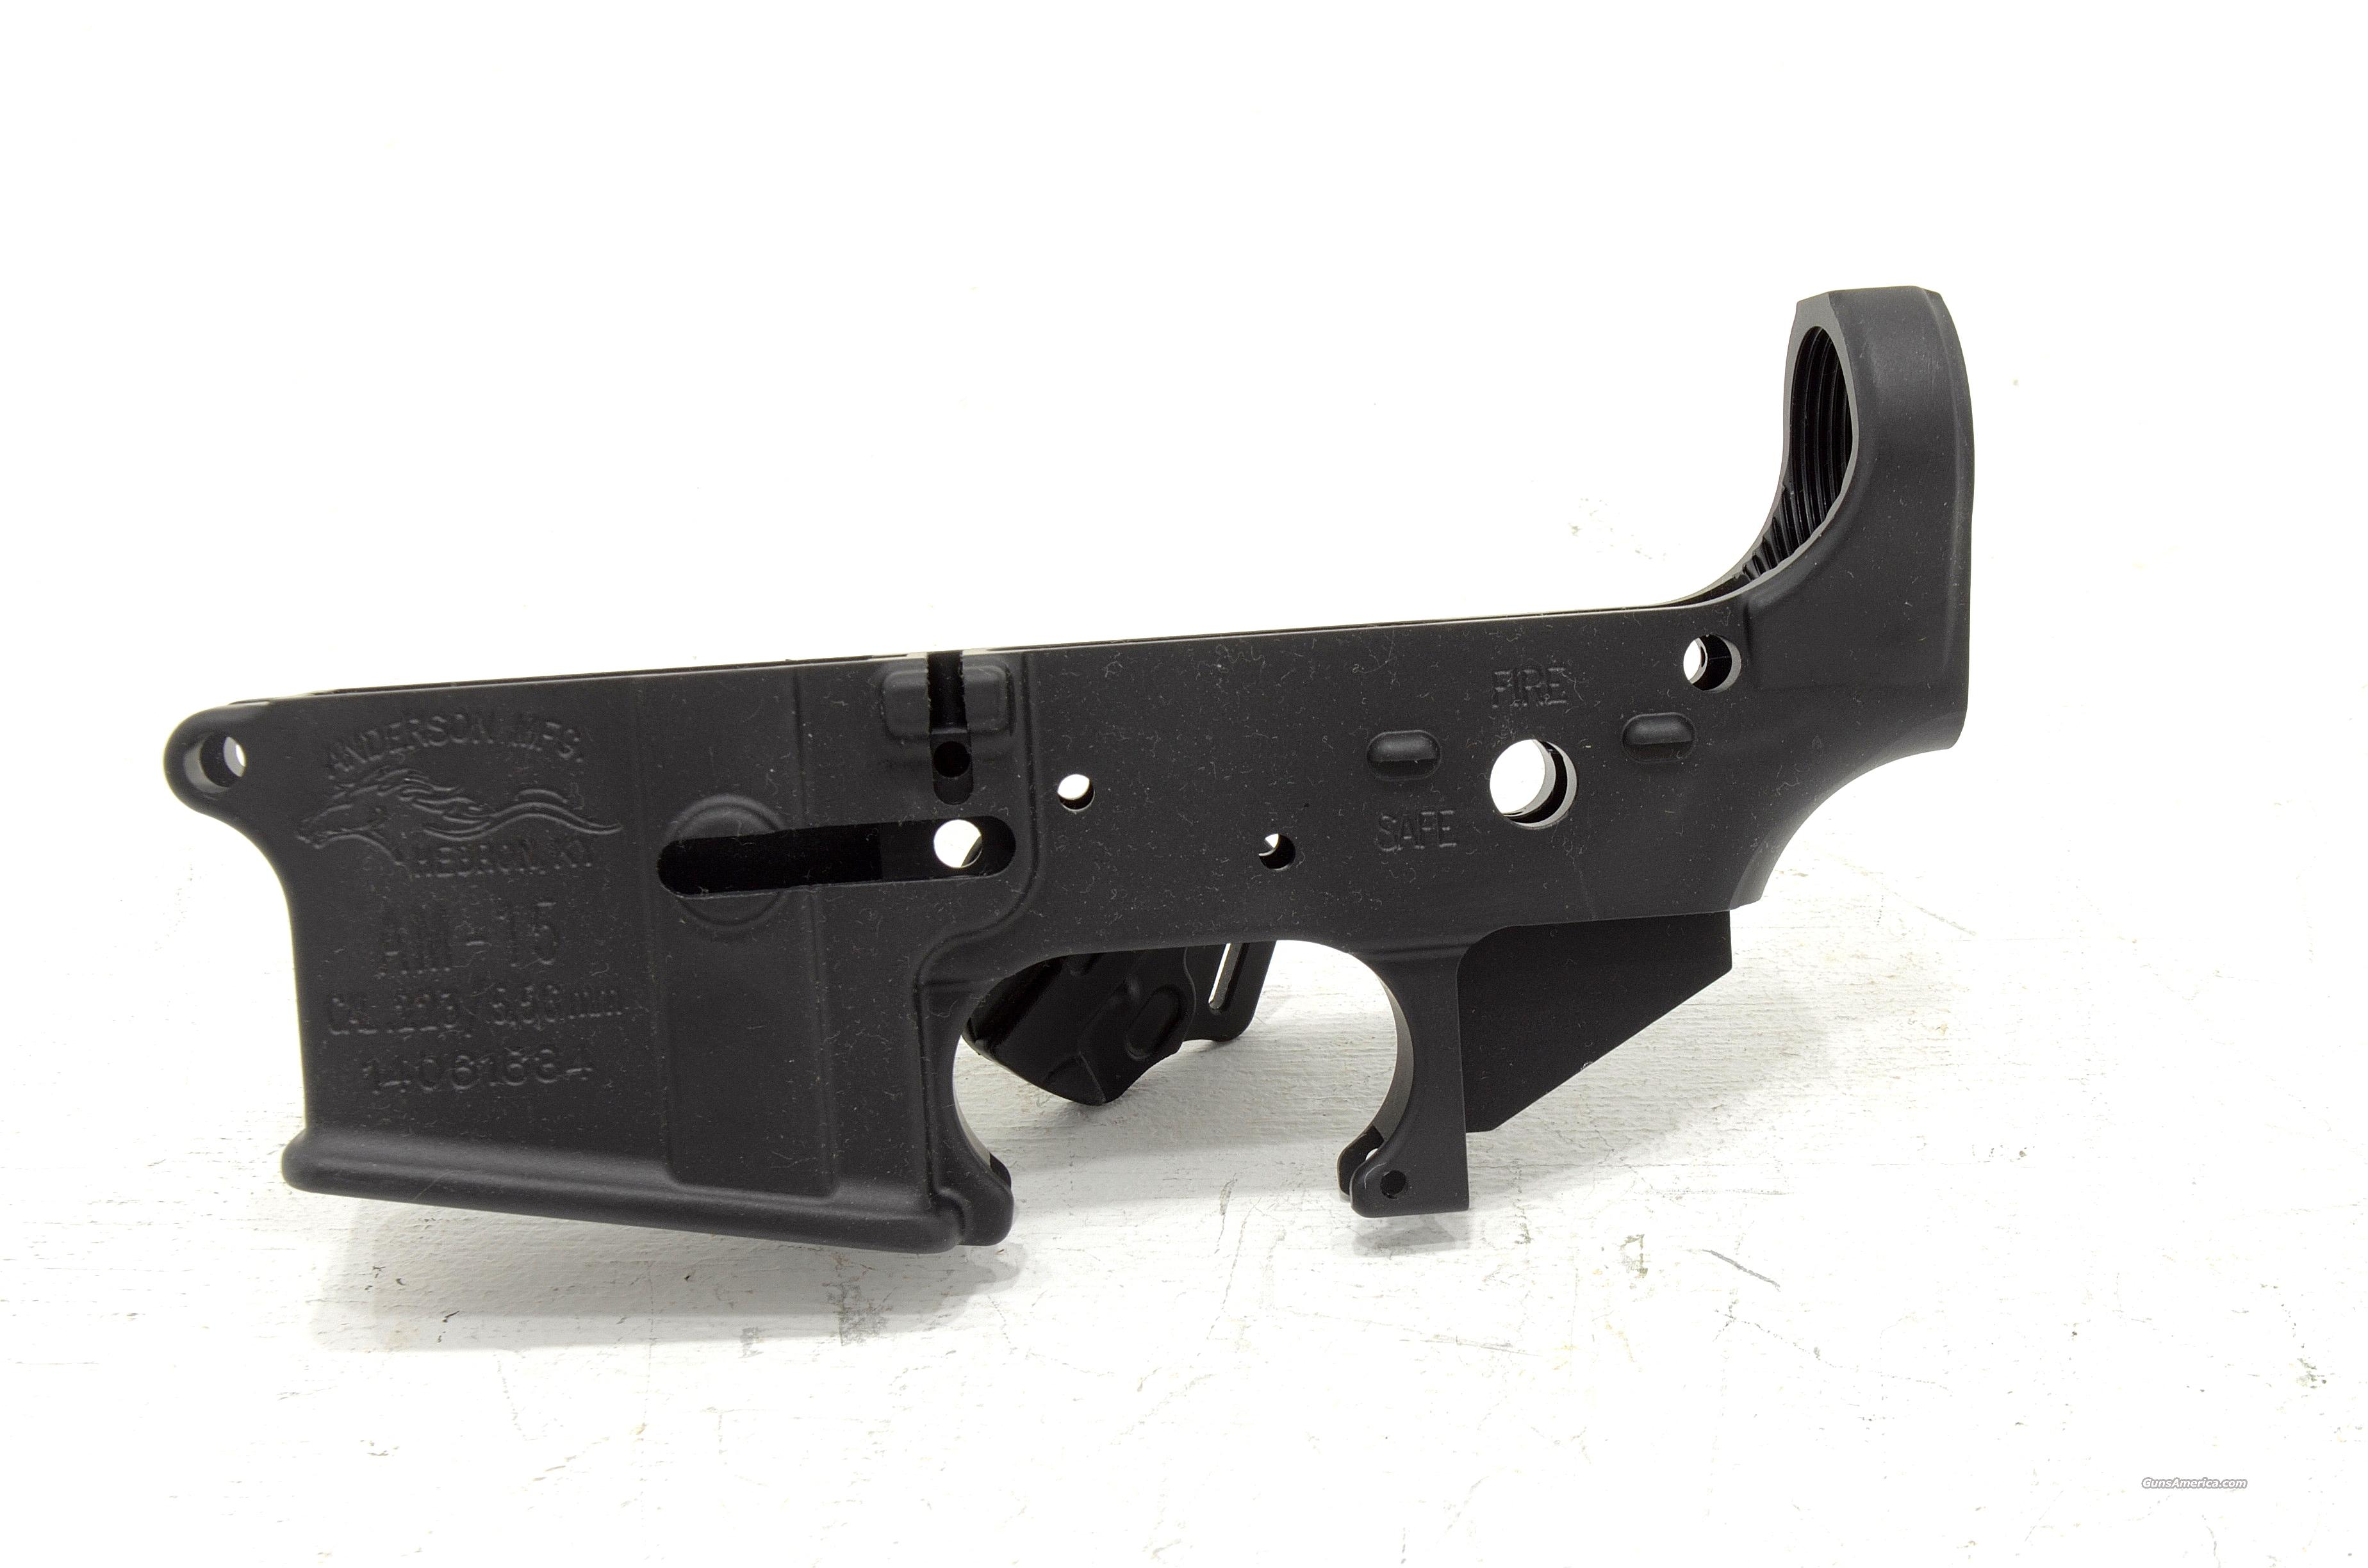 ANDERSON MANUFACTURING AR15 A3 STRIPPED LOWER  Guns > Rifles > AR-15 Rifles - Small Manufacturers > Lower Only